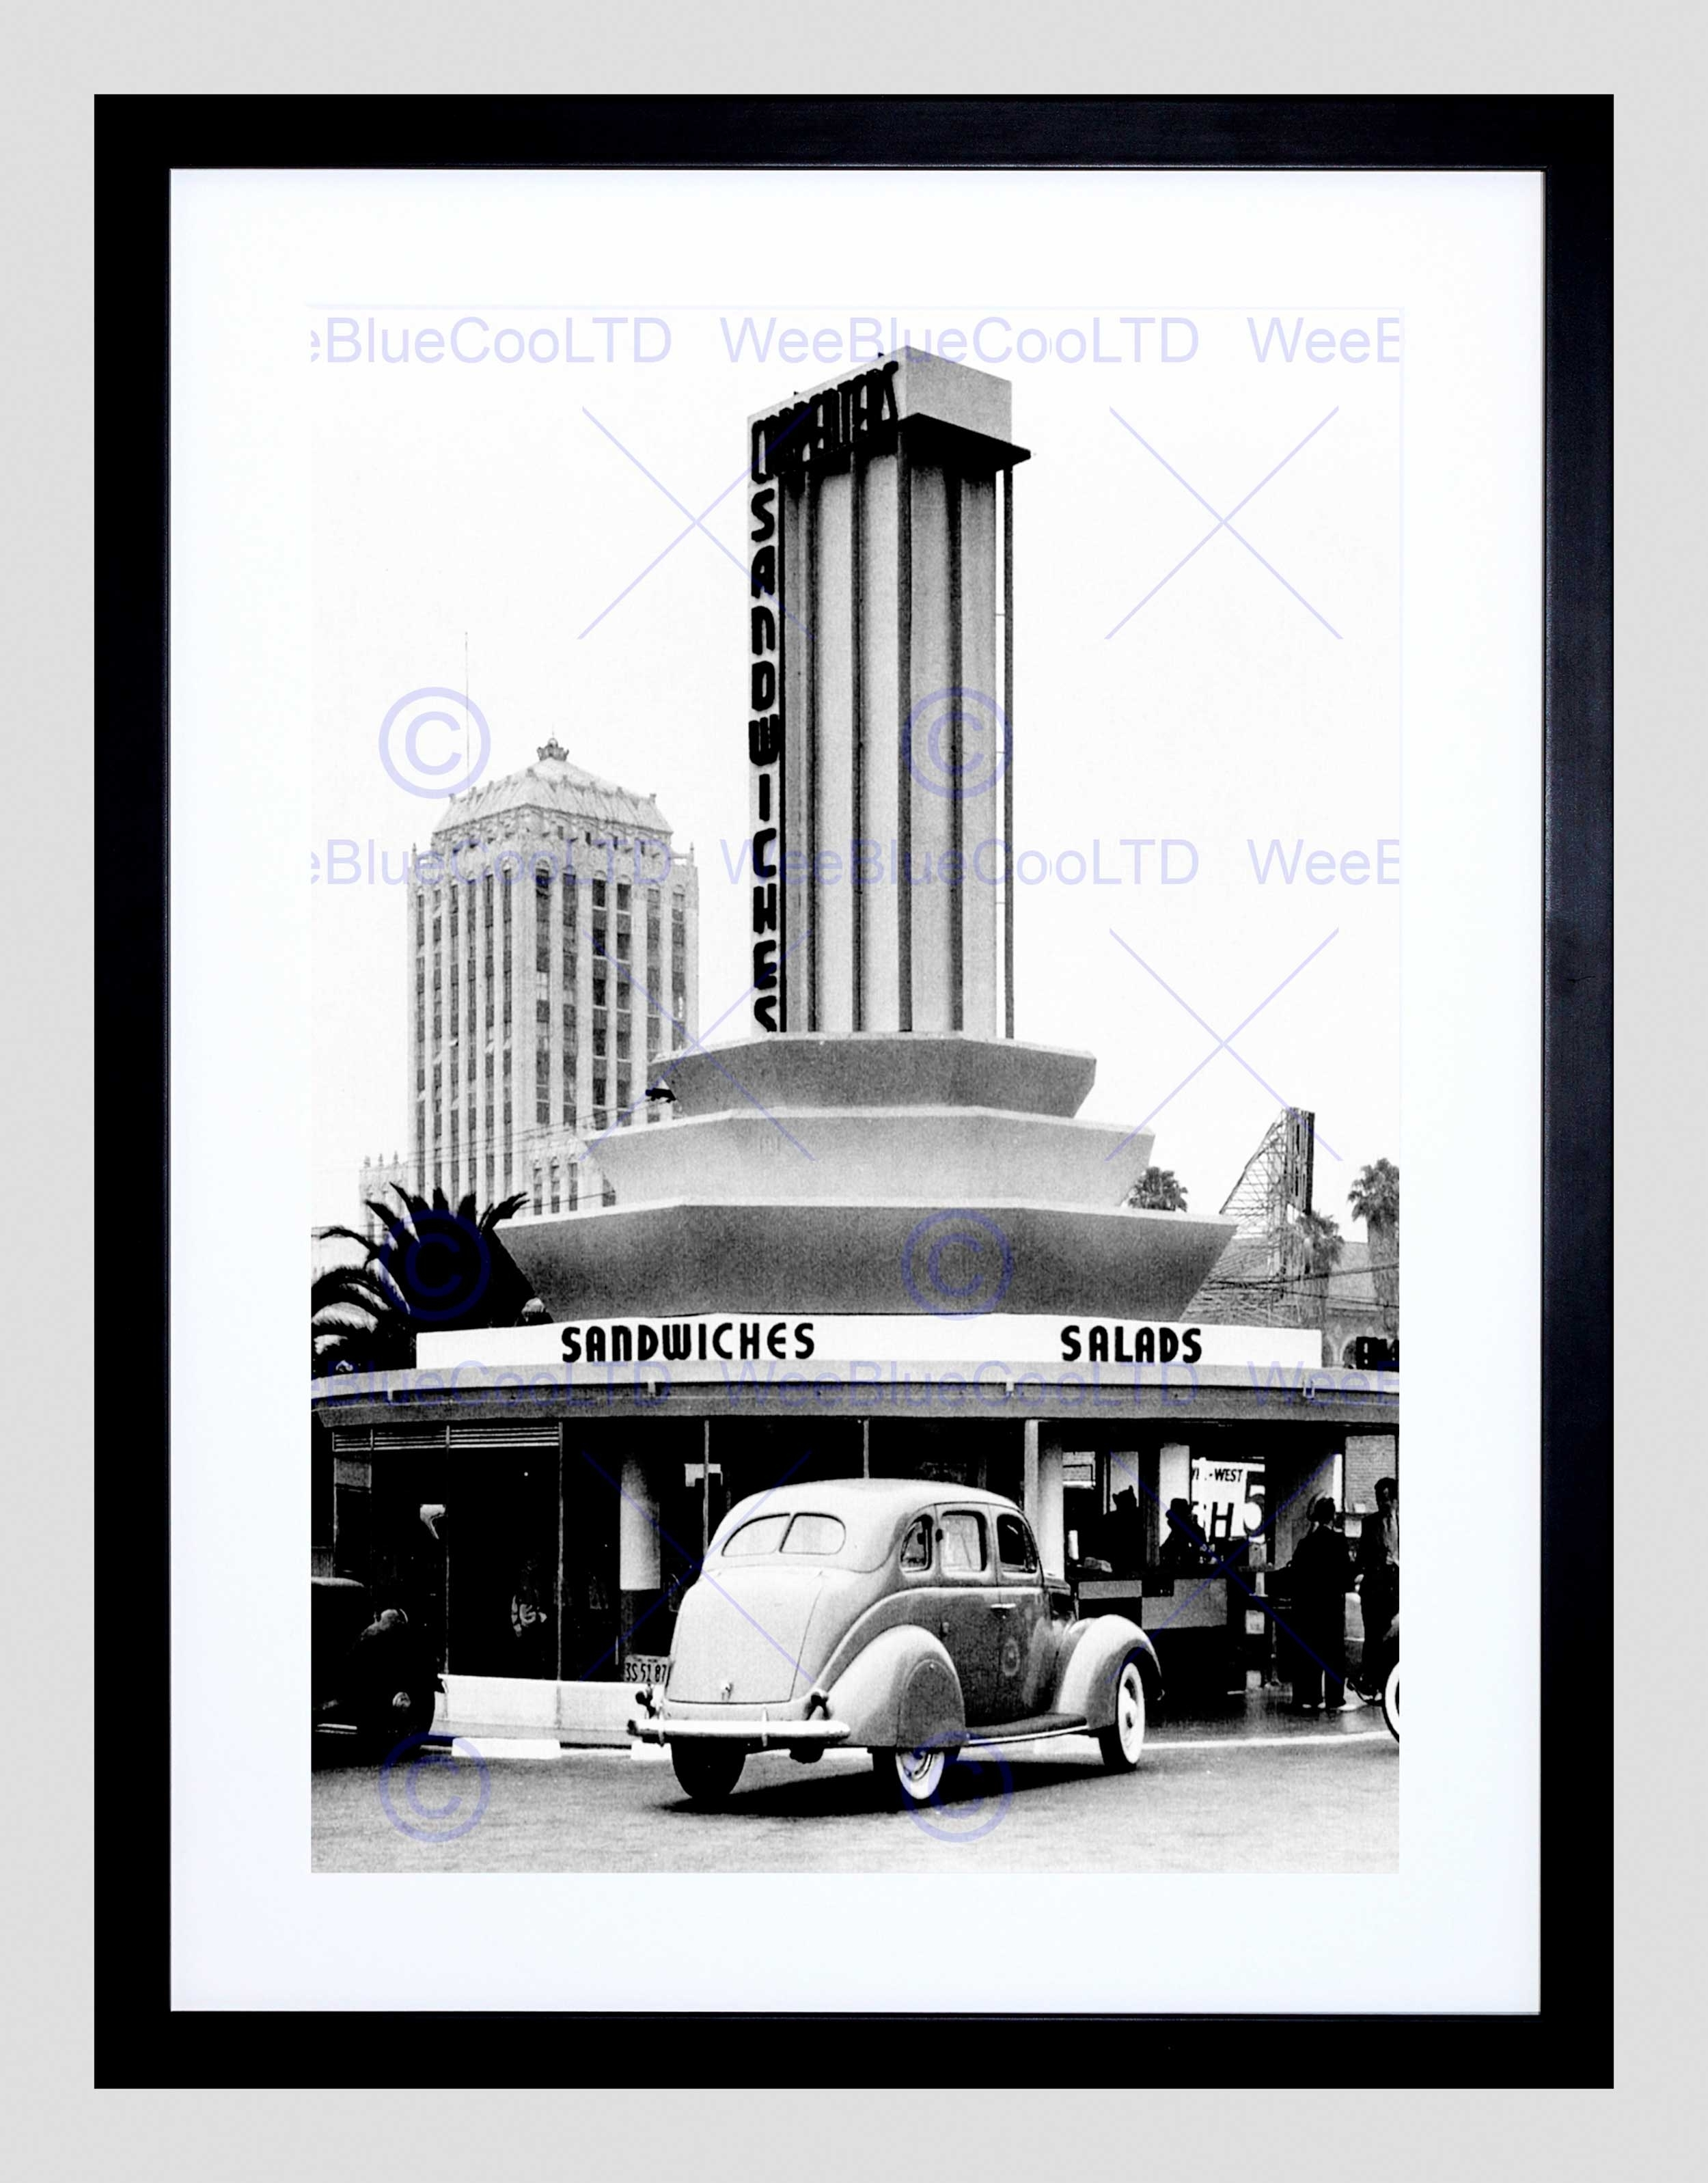 Vintage Sandwich Shop Los Angeles California Usa Framed Art Print Regarding Most Up To Date Los Angeles Framed Art Prints (View 15 of 15)